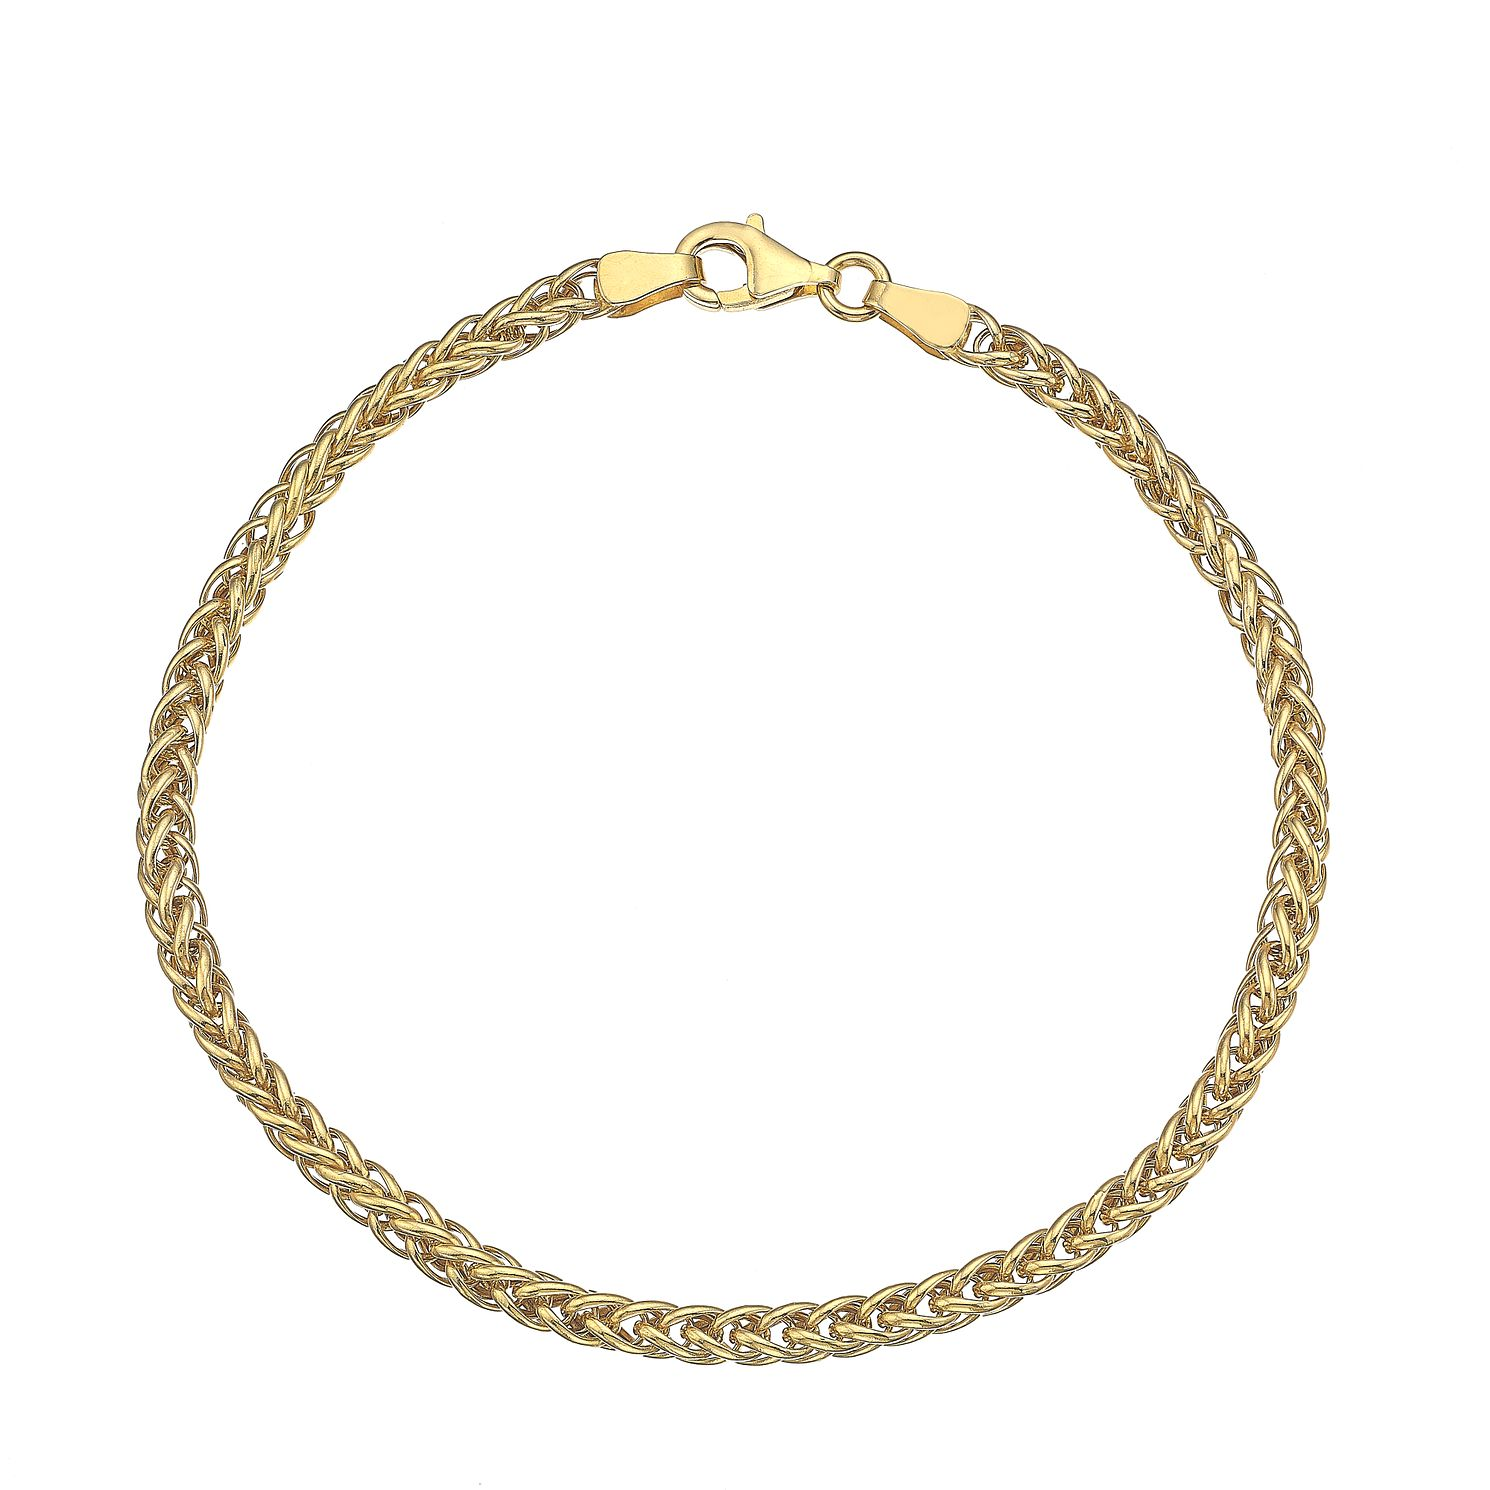 9ct Yellow Gold 7.5 Inch Spiga Chain Bracelet - Product number 4811976